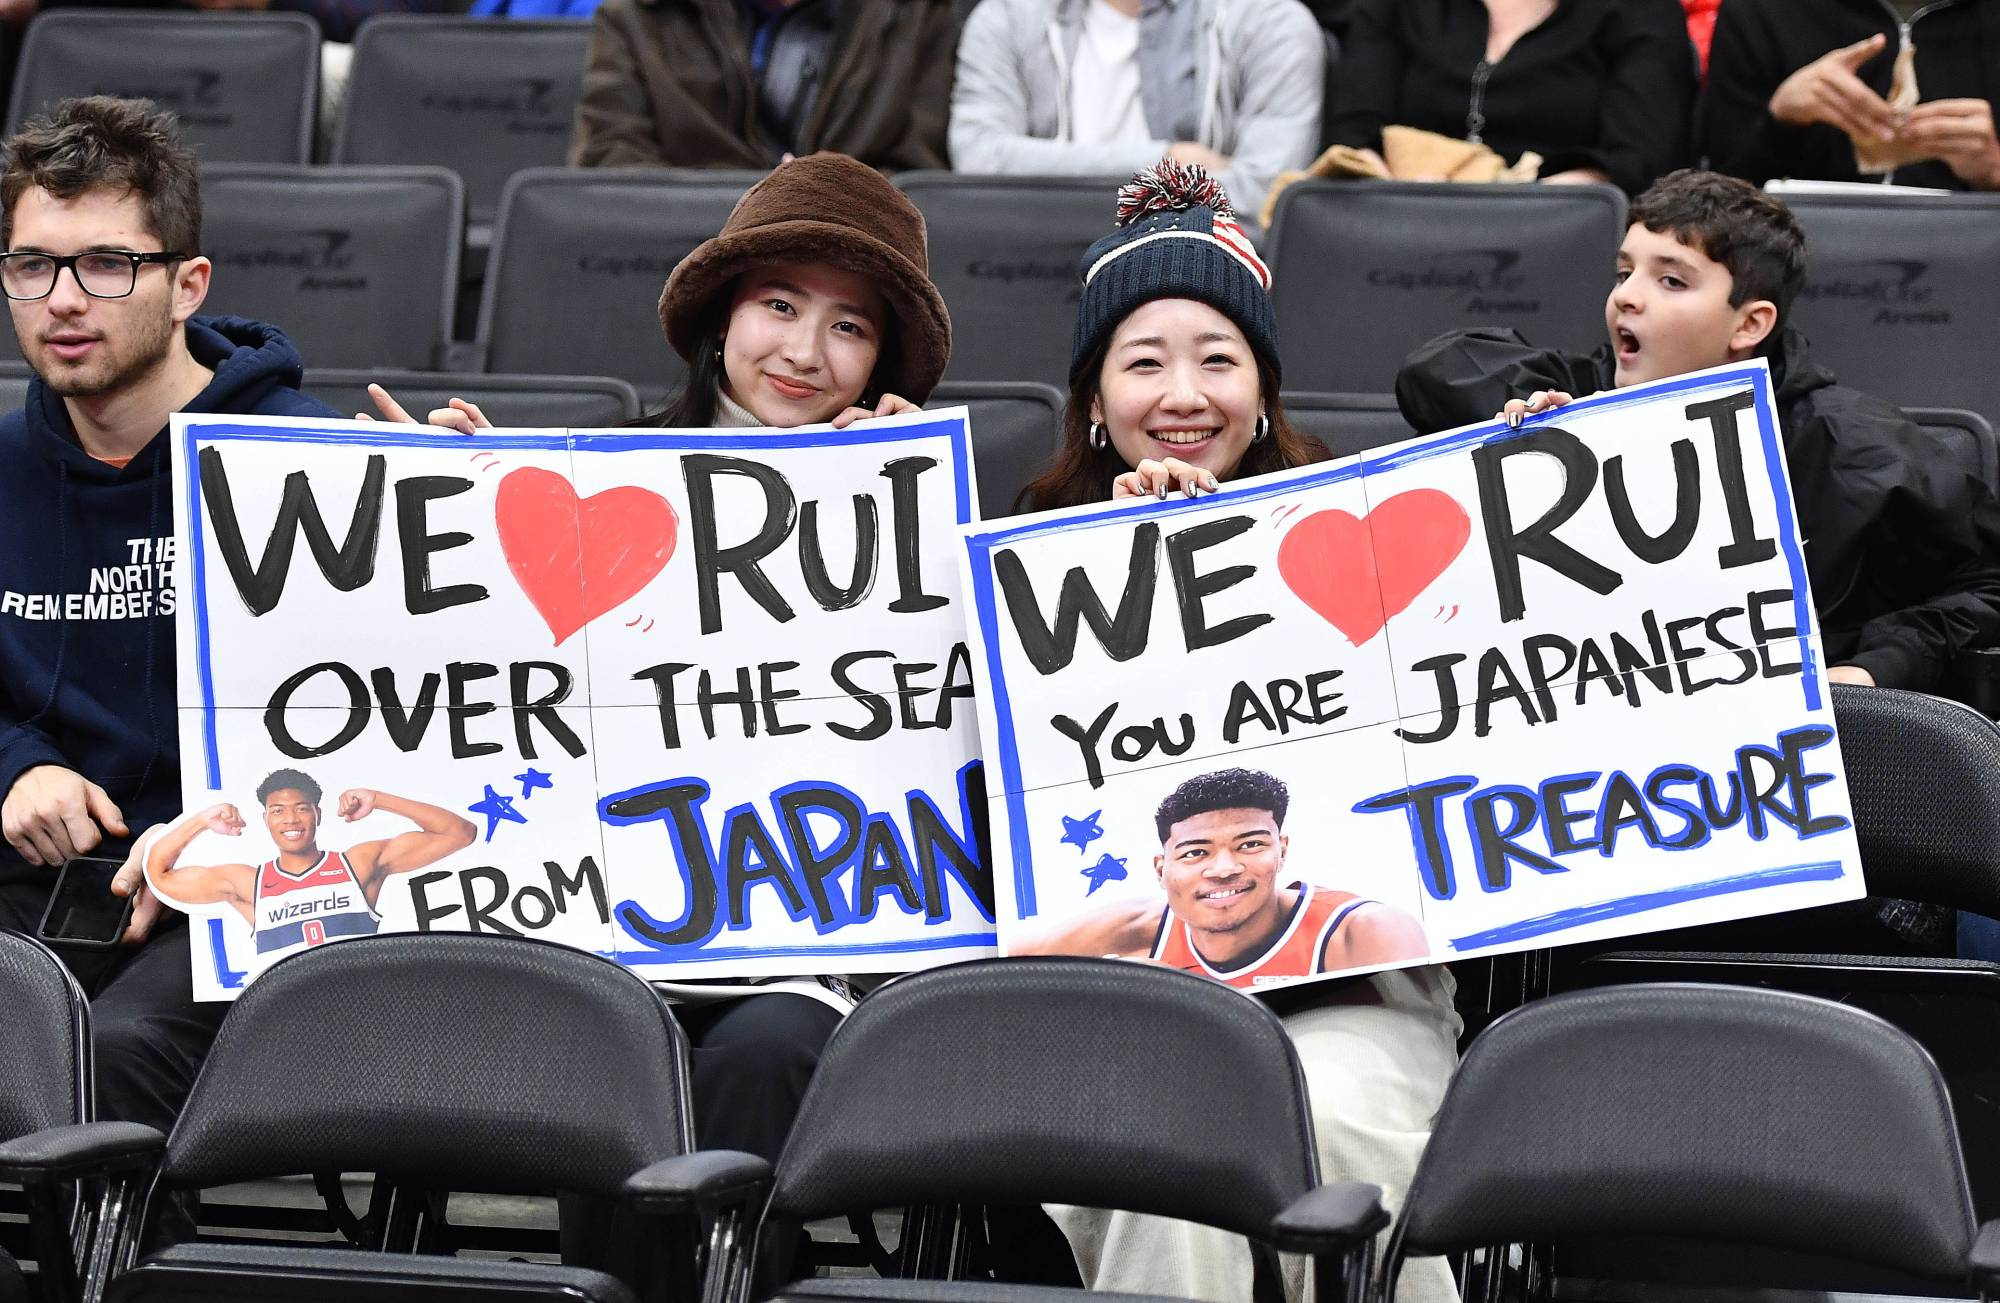 Wizards fans show support for forward Rui Hachimura before a game against the Heat on Dec. 30, 2019, in Washington. | USA TODAY / VIA REUTERS